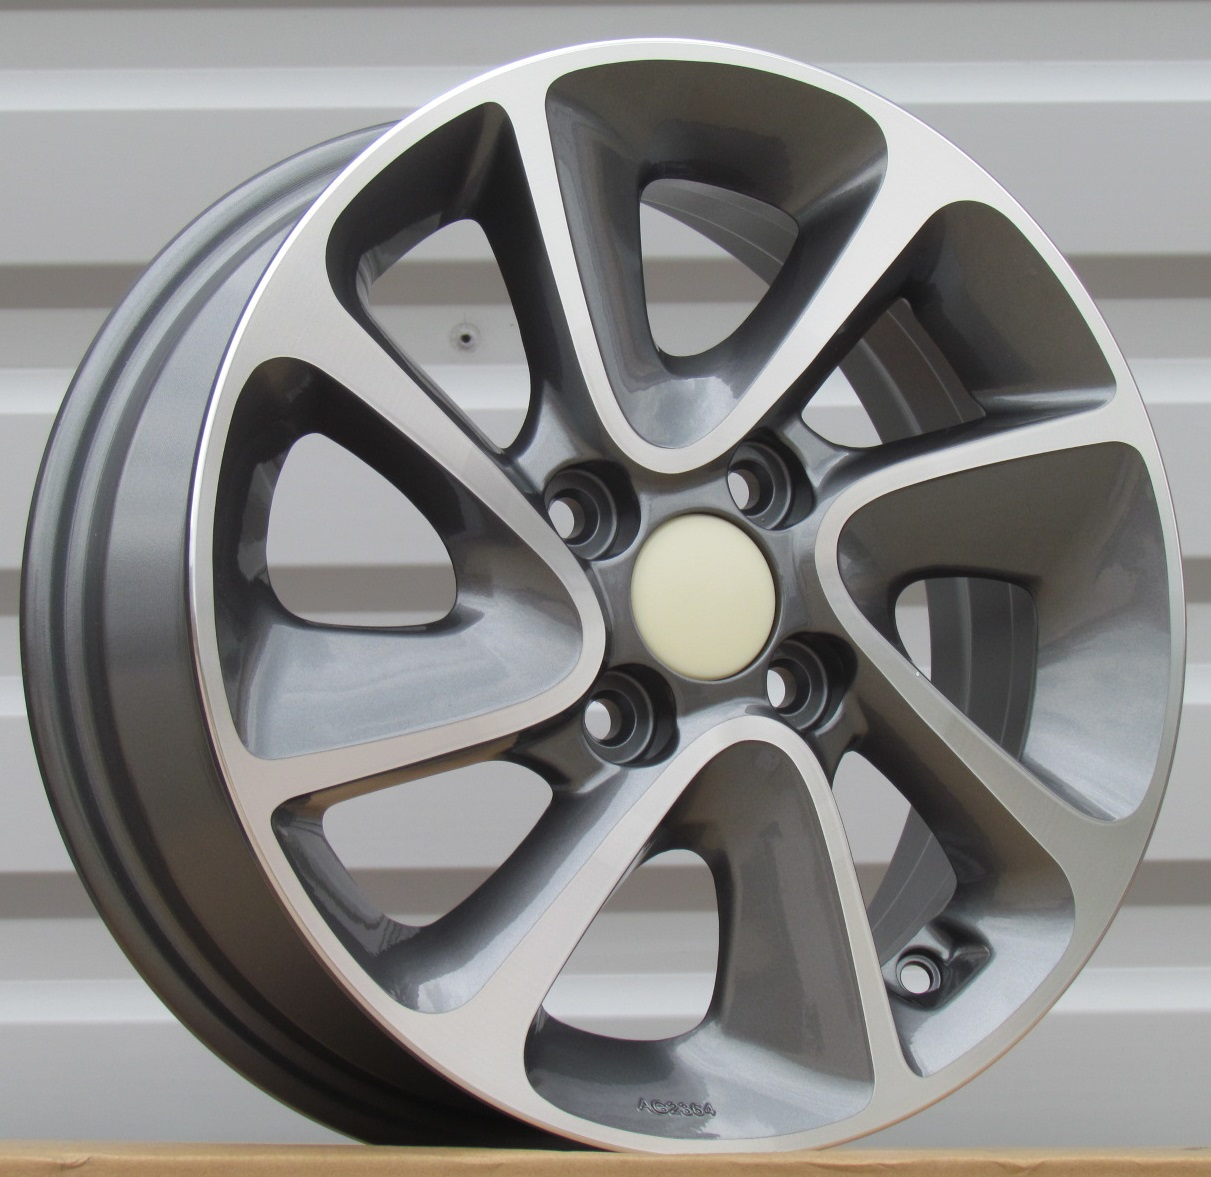 K14X5 4X100 ET41 54.1 BK5387 MG+Powder Coating RWR KI (+2eur) (K4) 5x14 ET42 4x100